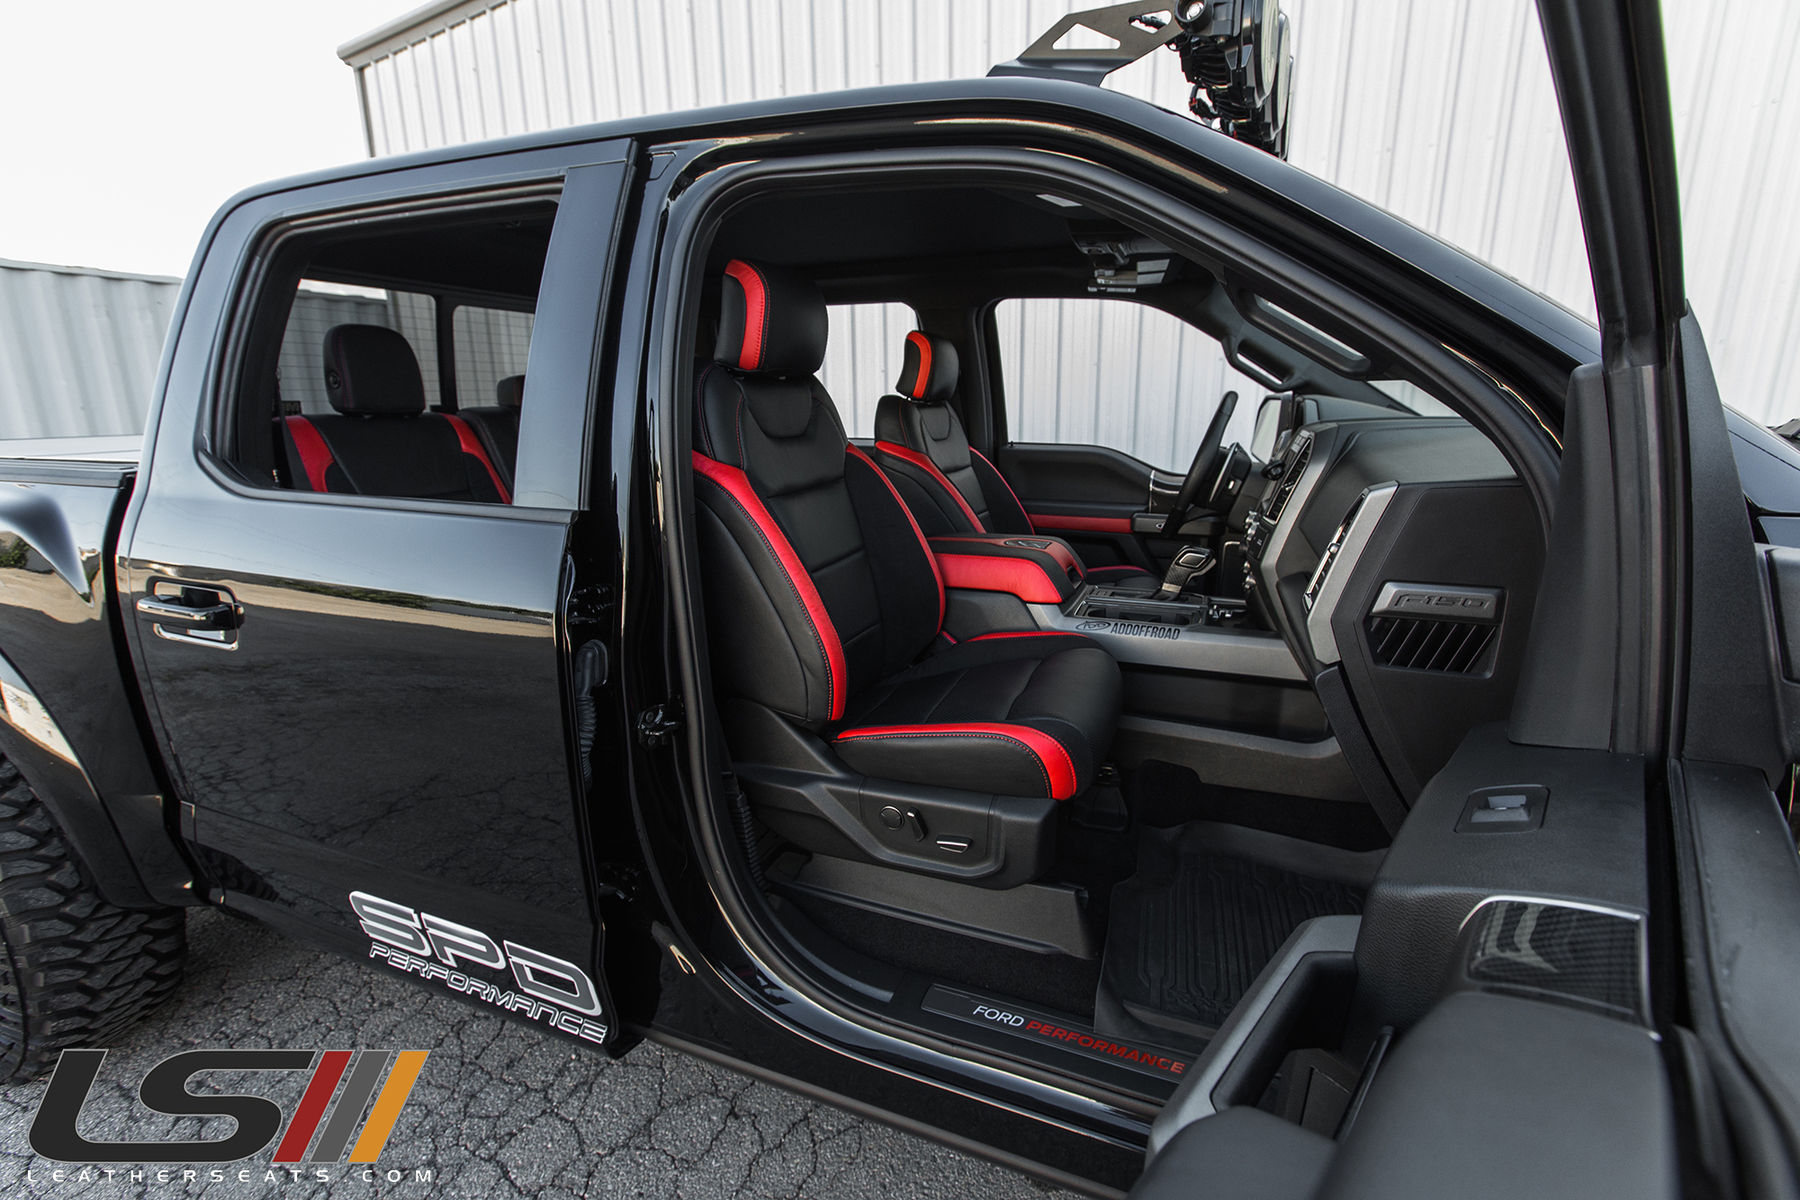 Ford Raptor Interior >> 2017 Ford F 150 Raptor Interior By Leatherseats Com